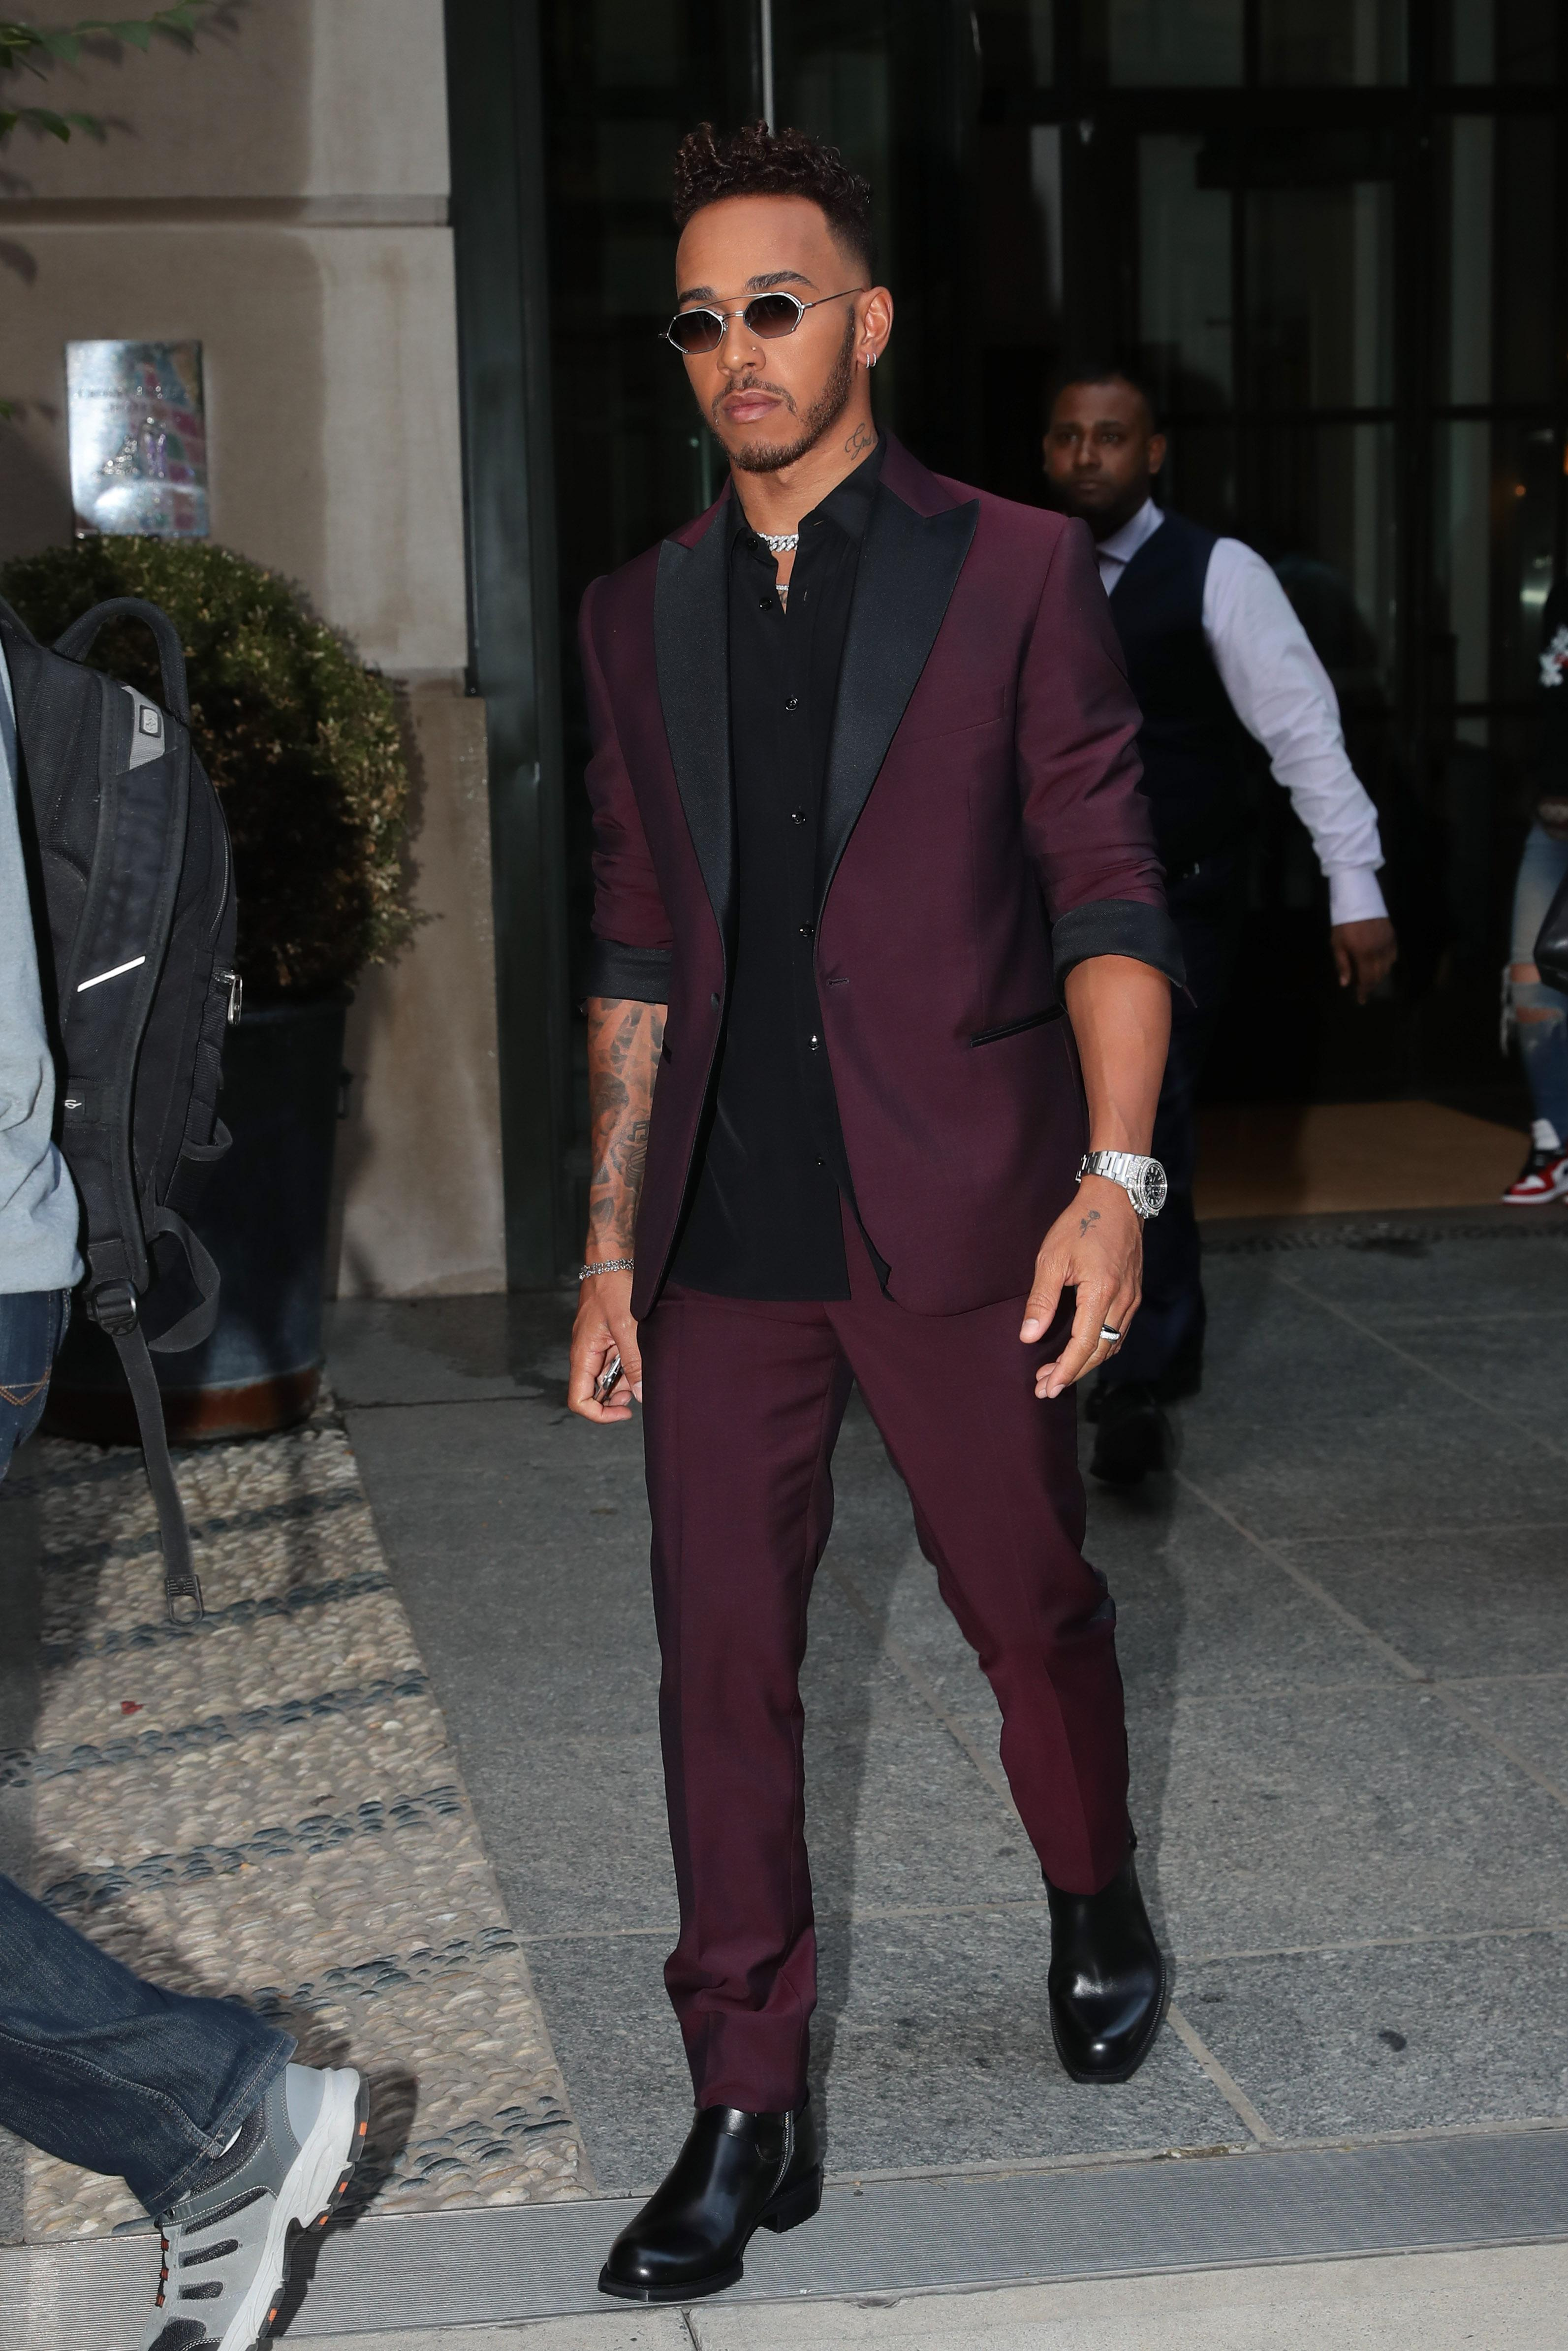 Lewis Hamilton attended a fashion bash in New York ahead of the Canadian Grand Prix this weekend